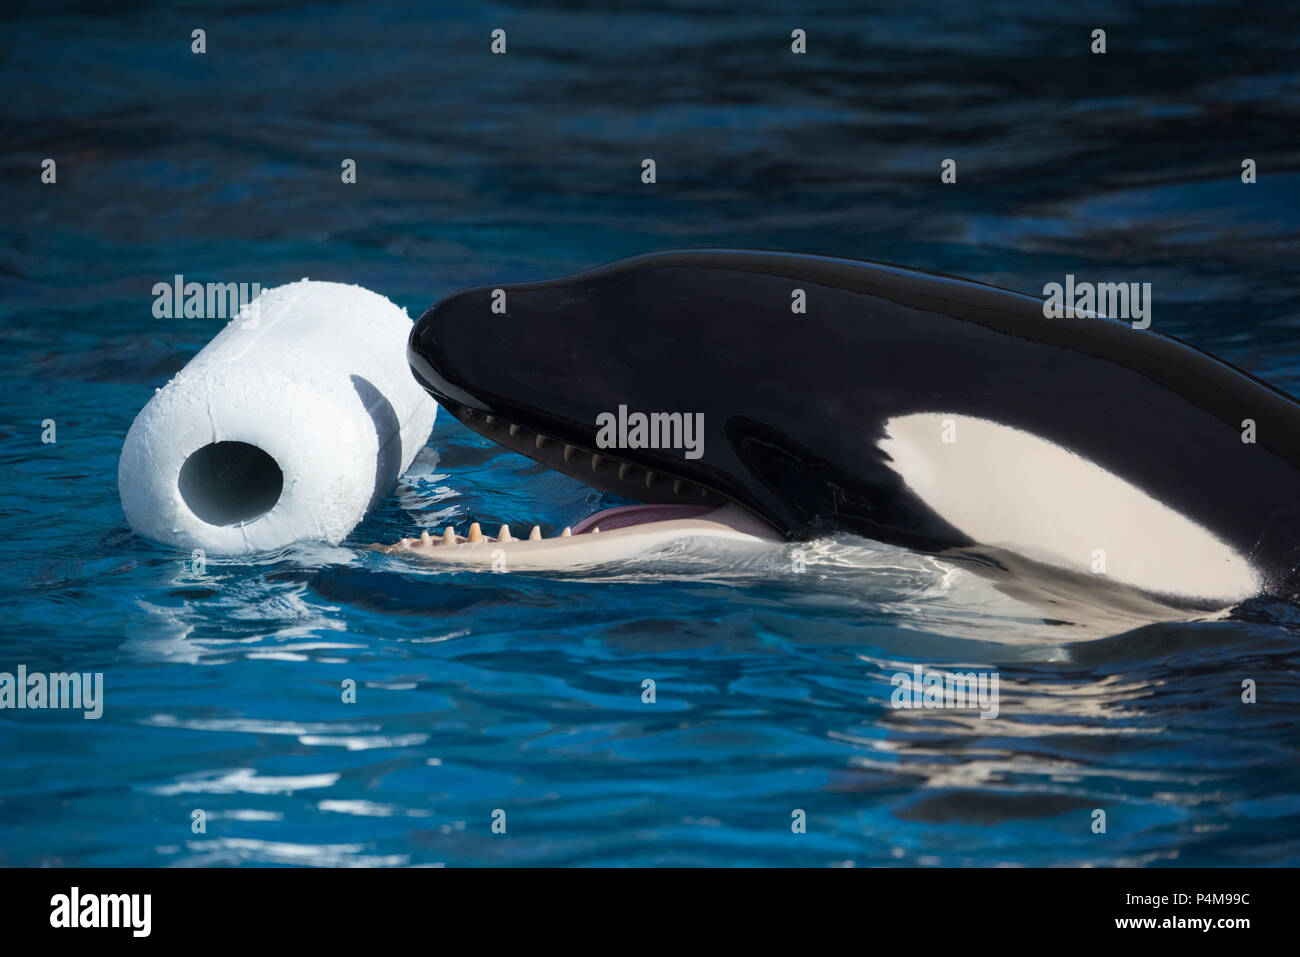 A young orca named Lynn plays with an Environmental Enrichment Device (or 'toy') at the Port of Nagoya Aquarium in Nagoya, Japan. - Stock Image